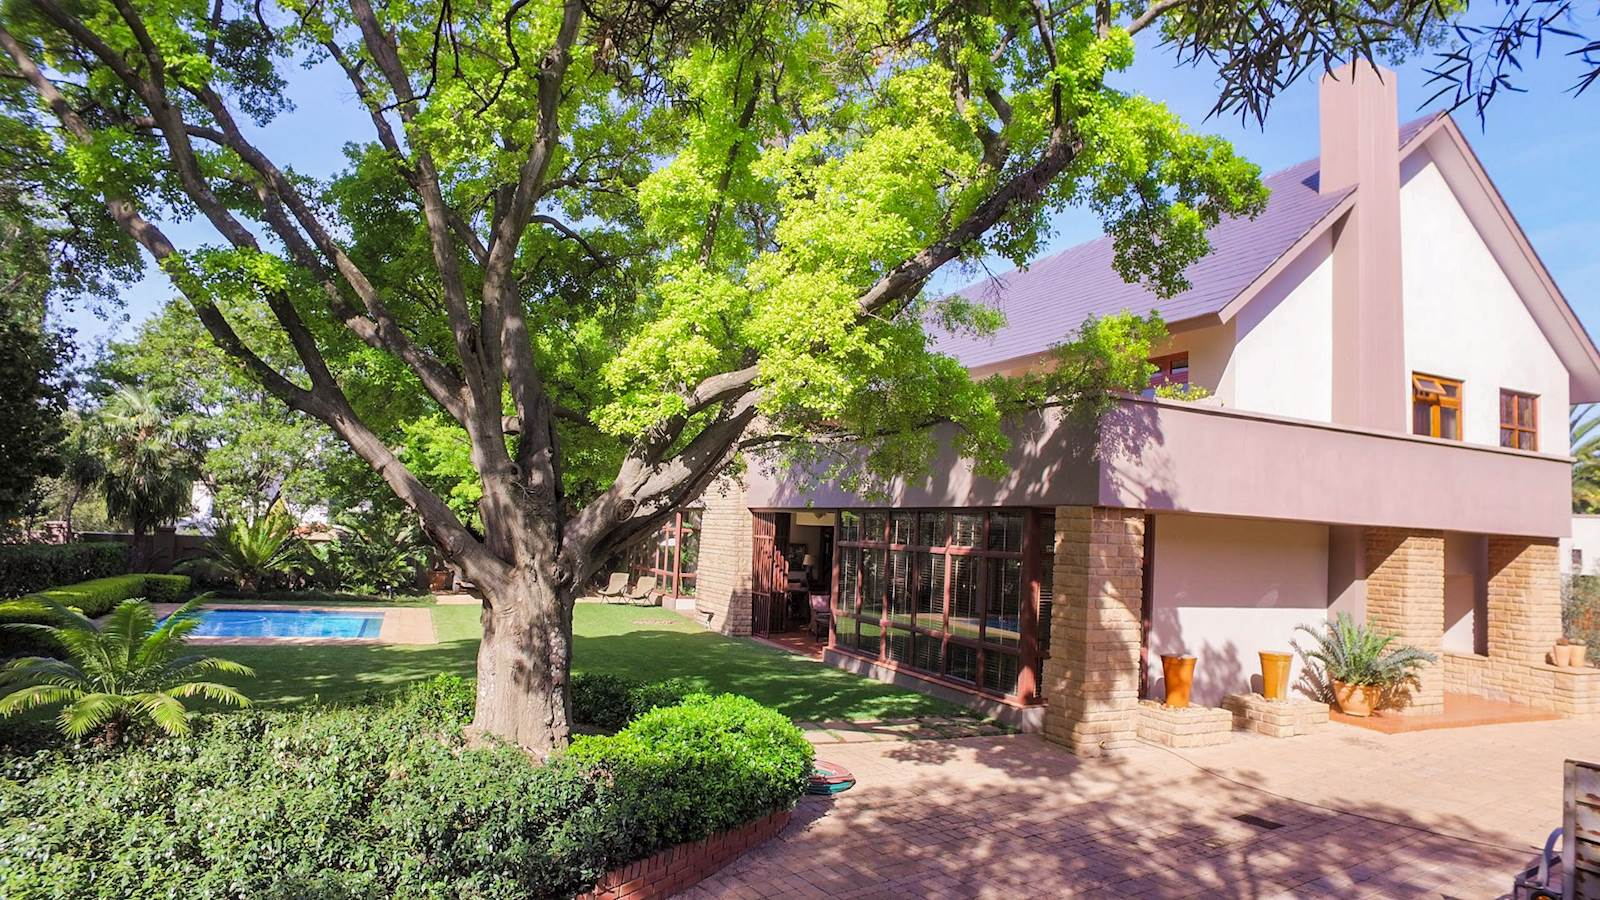 4 Bedroom House for sale in Waterkloof Ridge ENT0005736 : photo#0